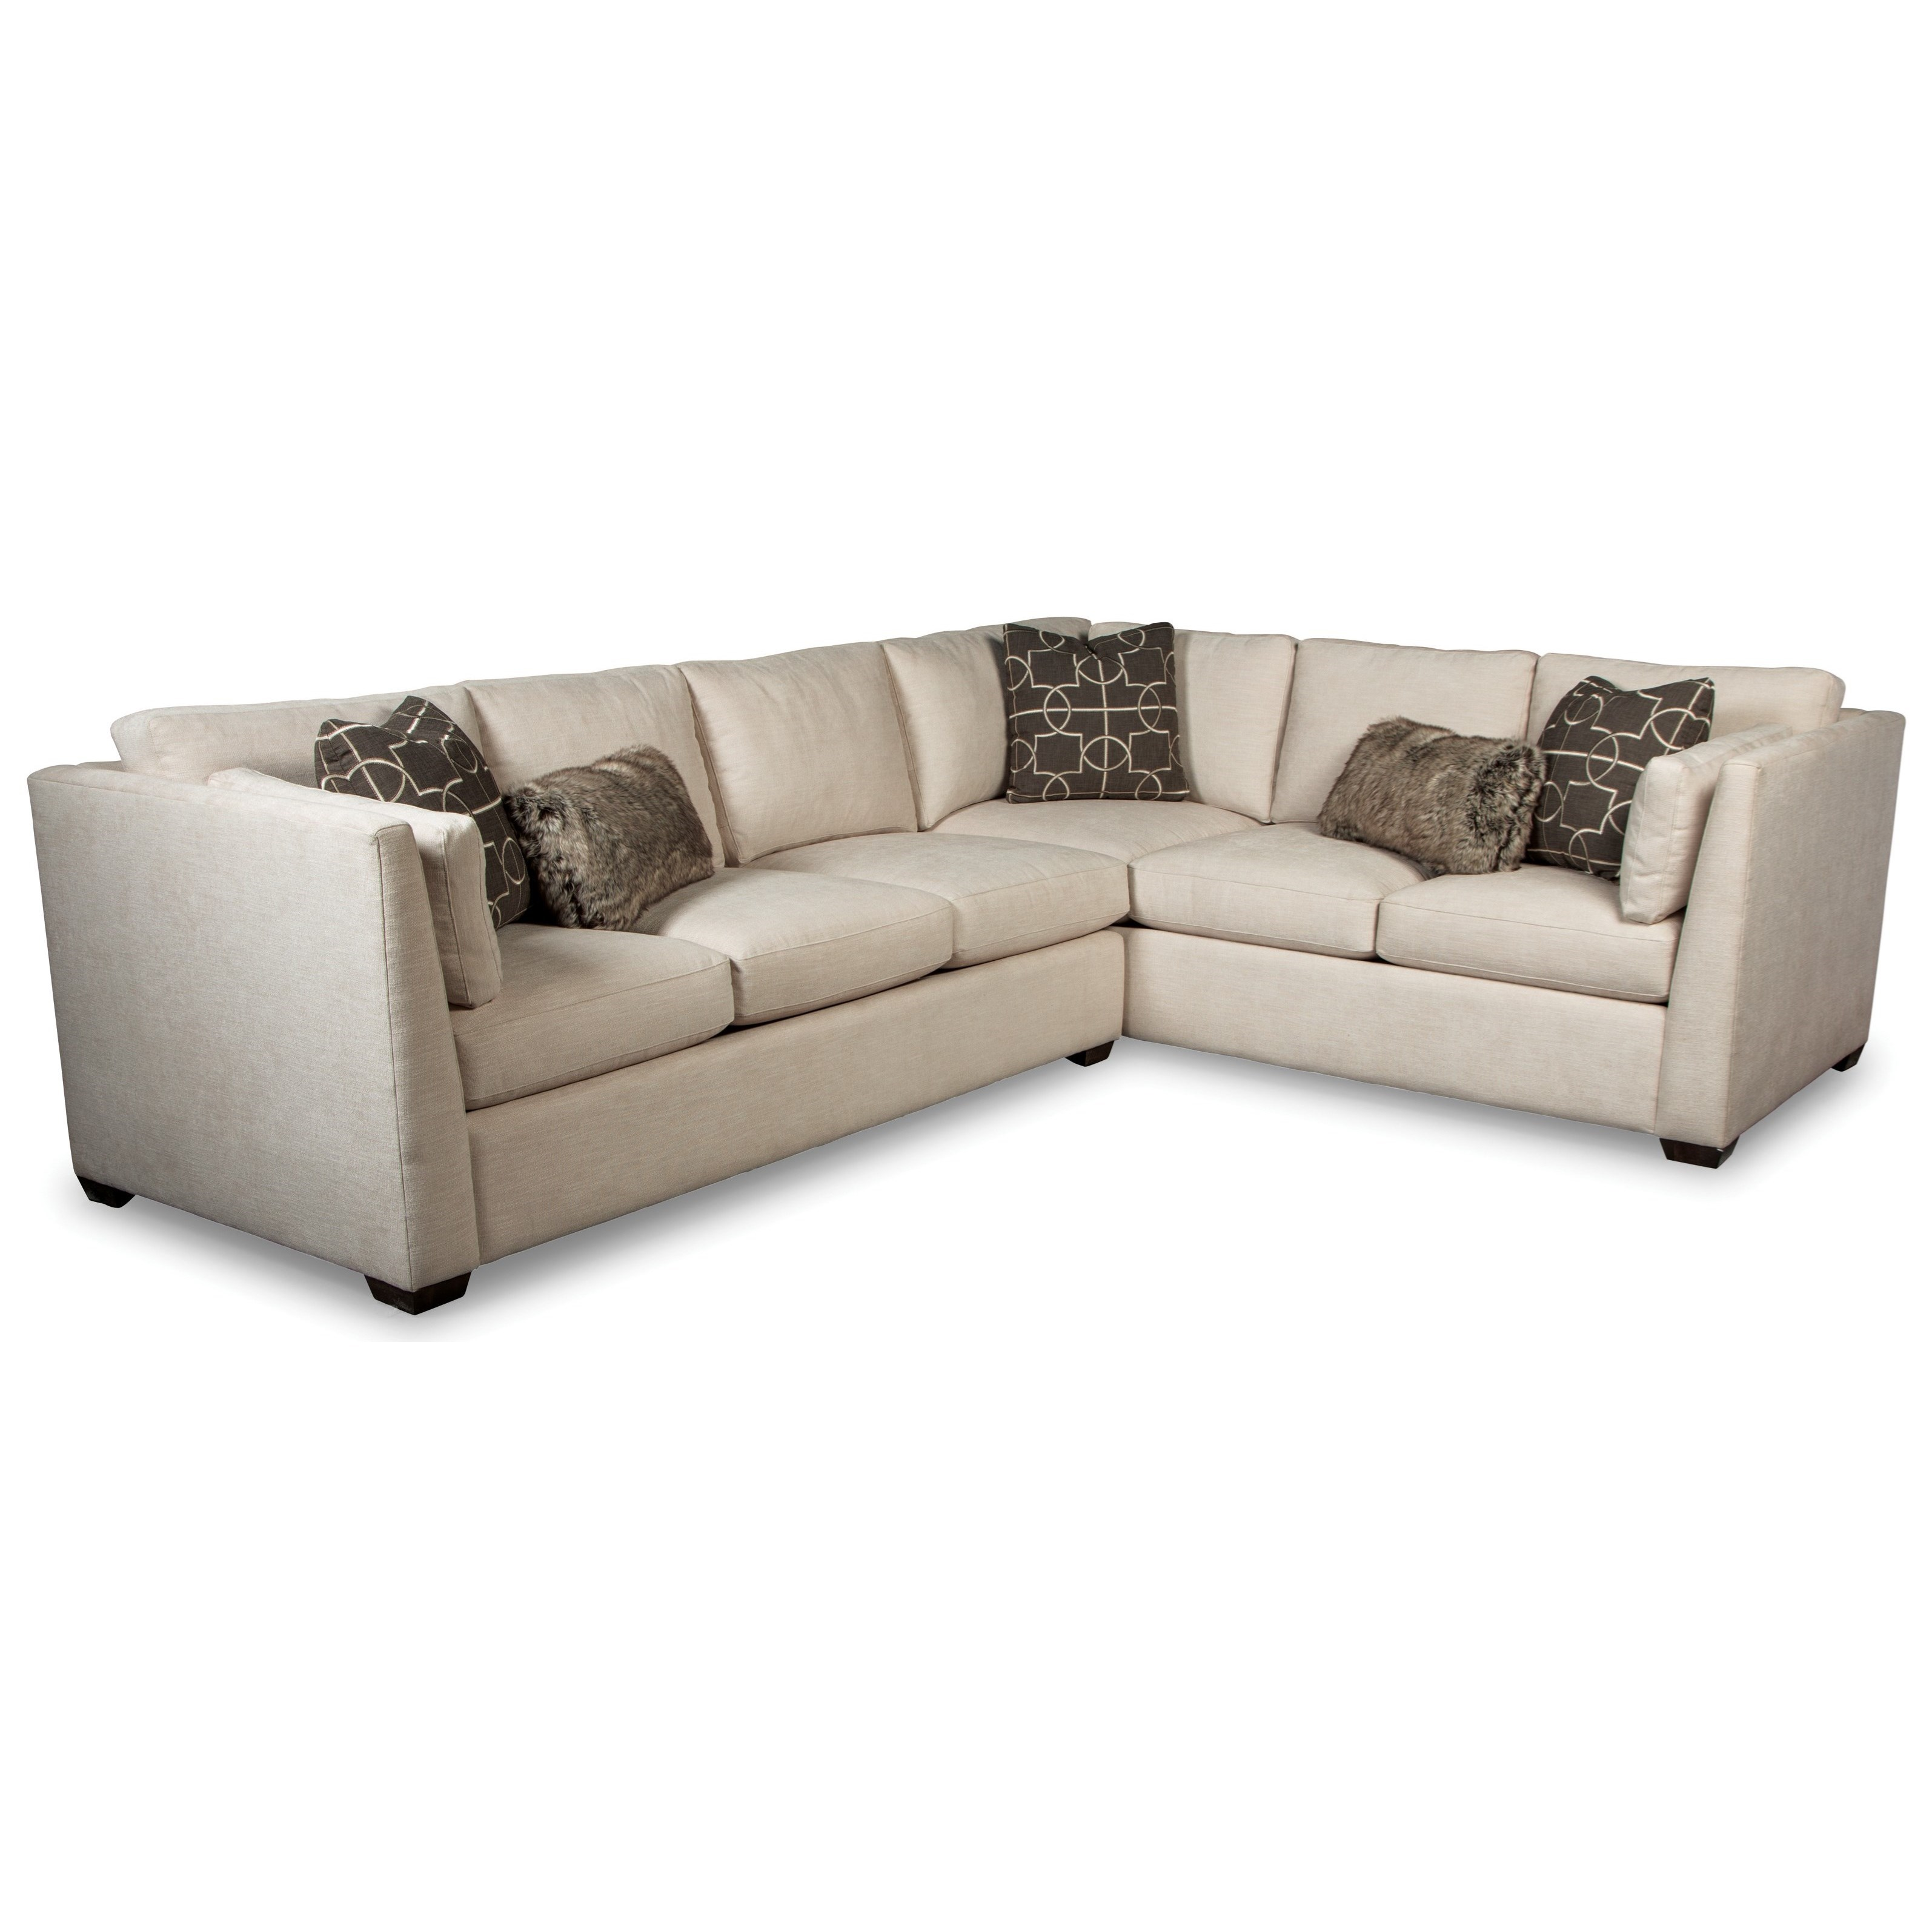 Rachael Ray Home By Craftmaster Rr760100 Contemporary Two Piece Sectional Sofa With Raf Corner